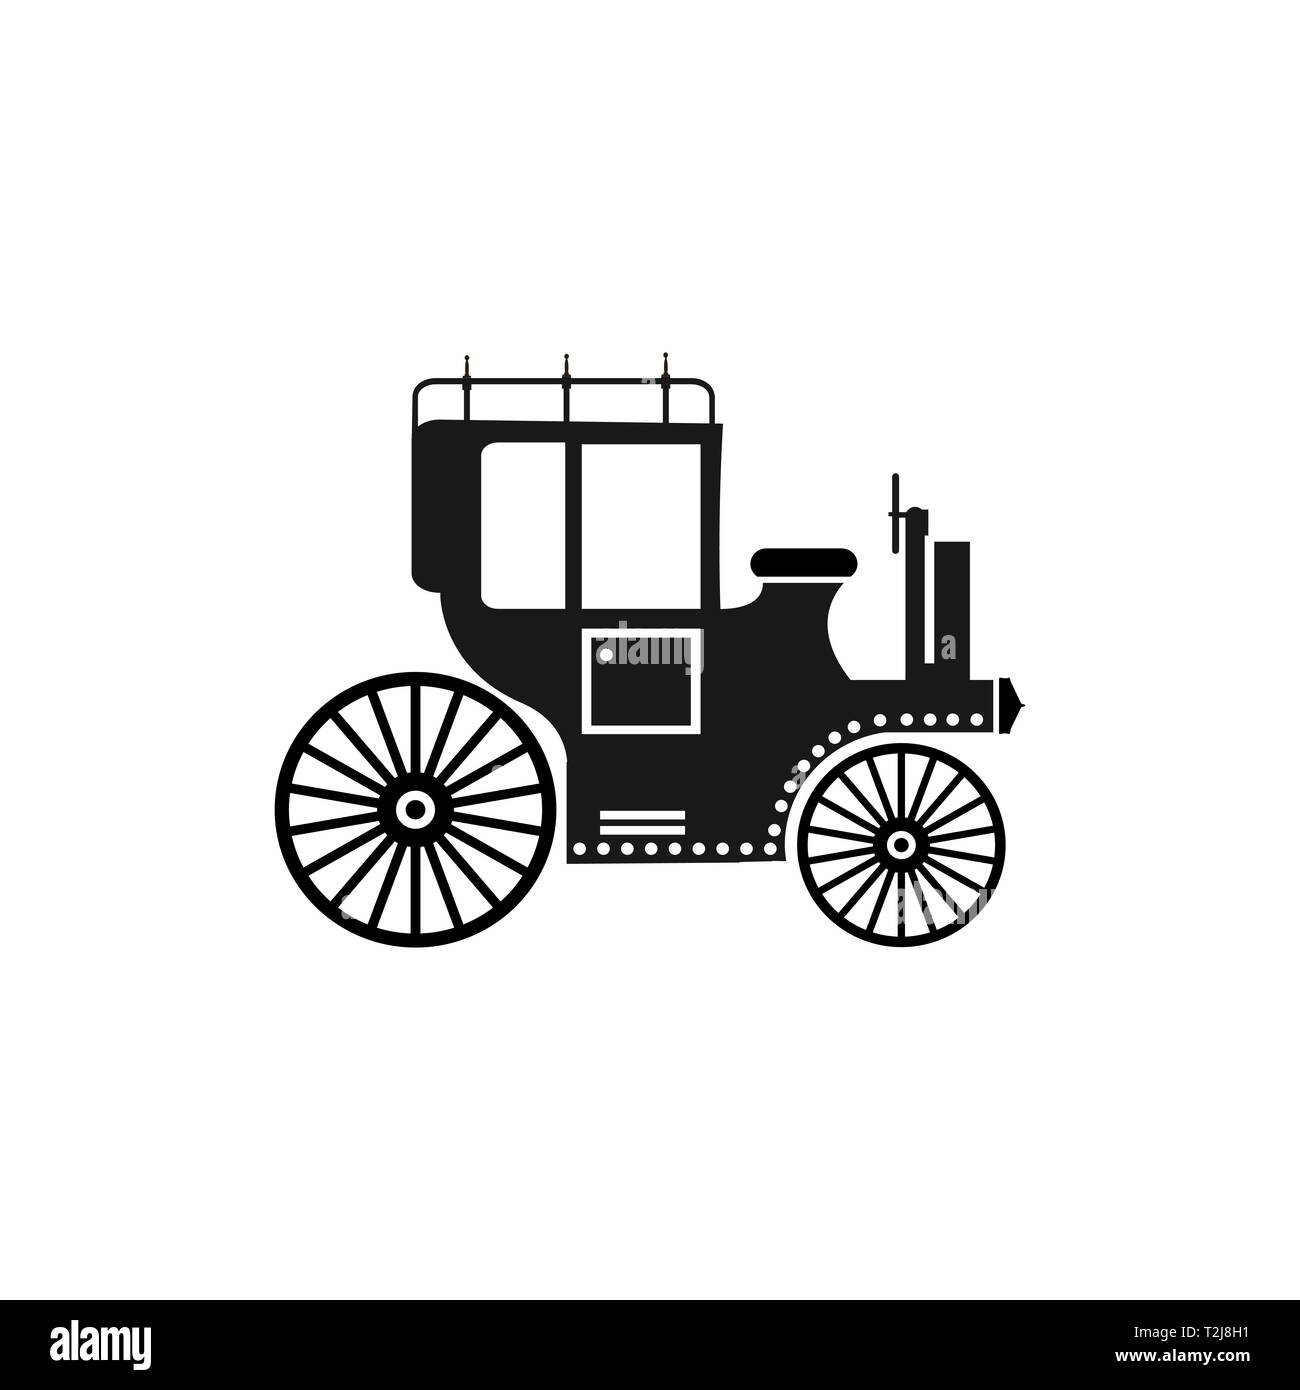 Retro car vehicle silhouette urban infrastructure without shadows cut out Stock Vector